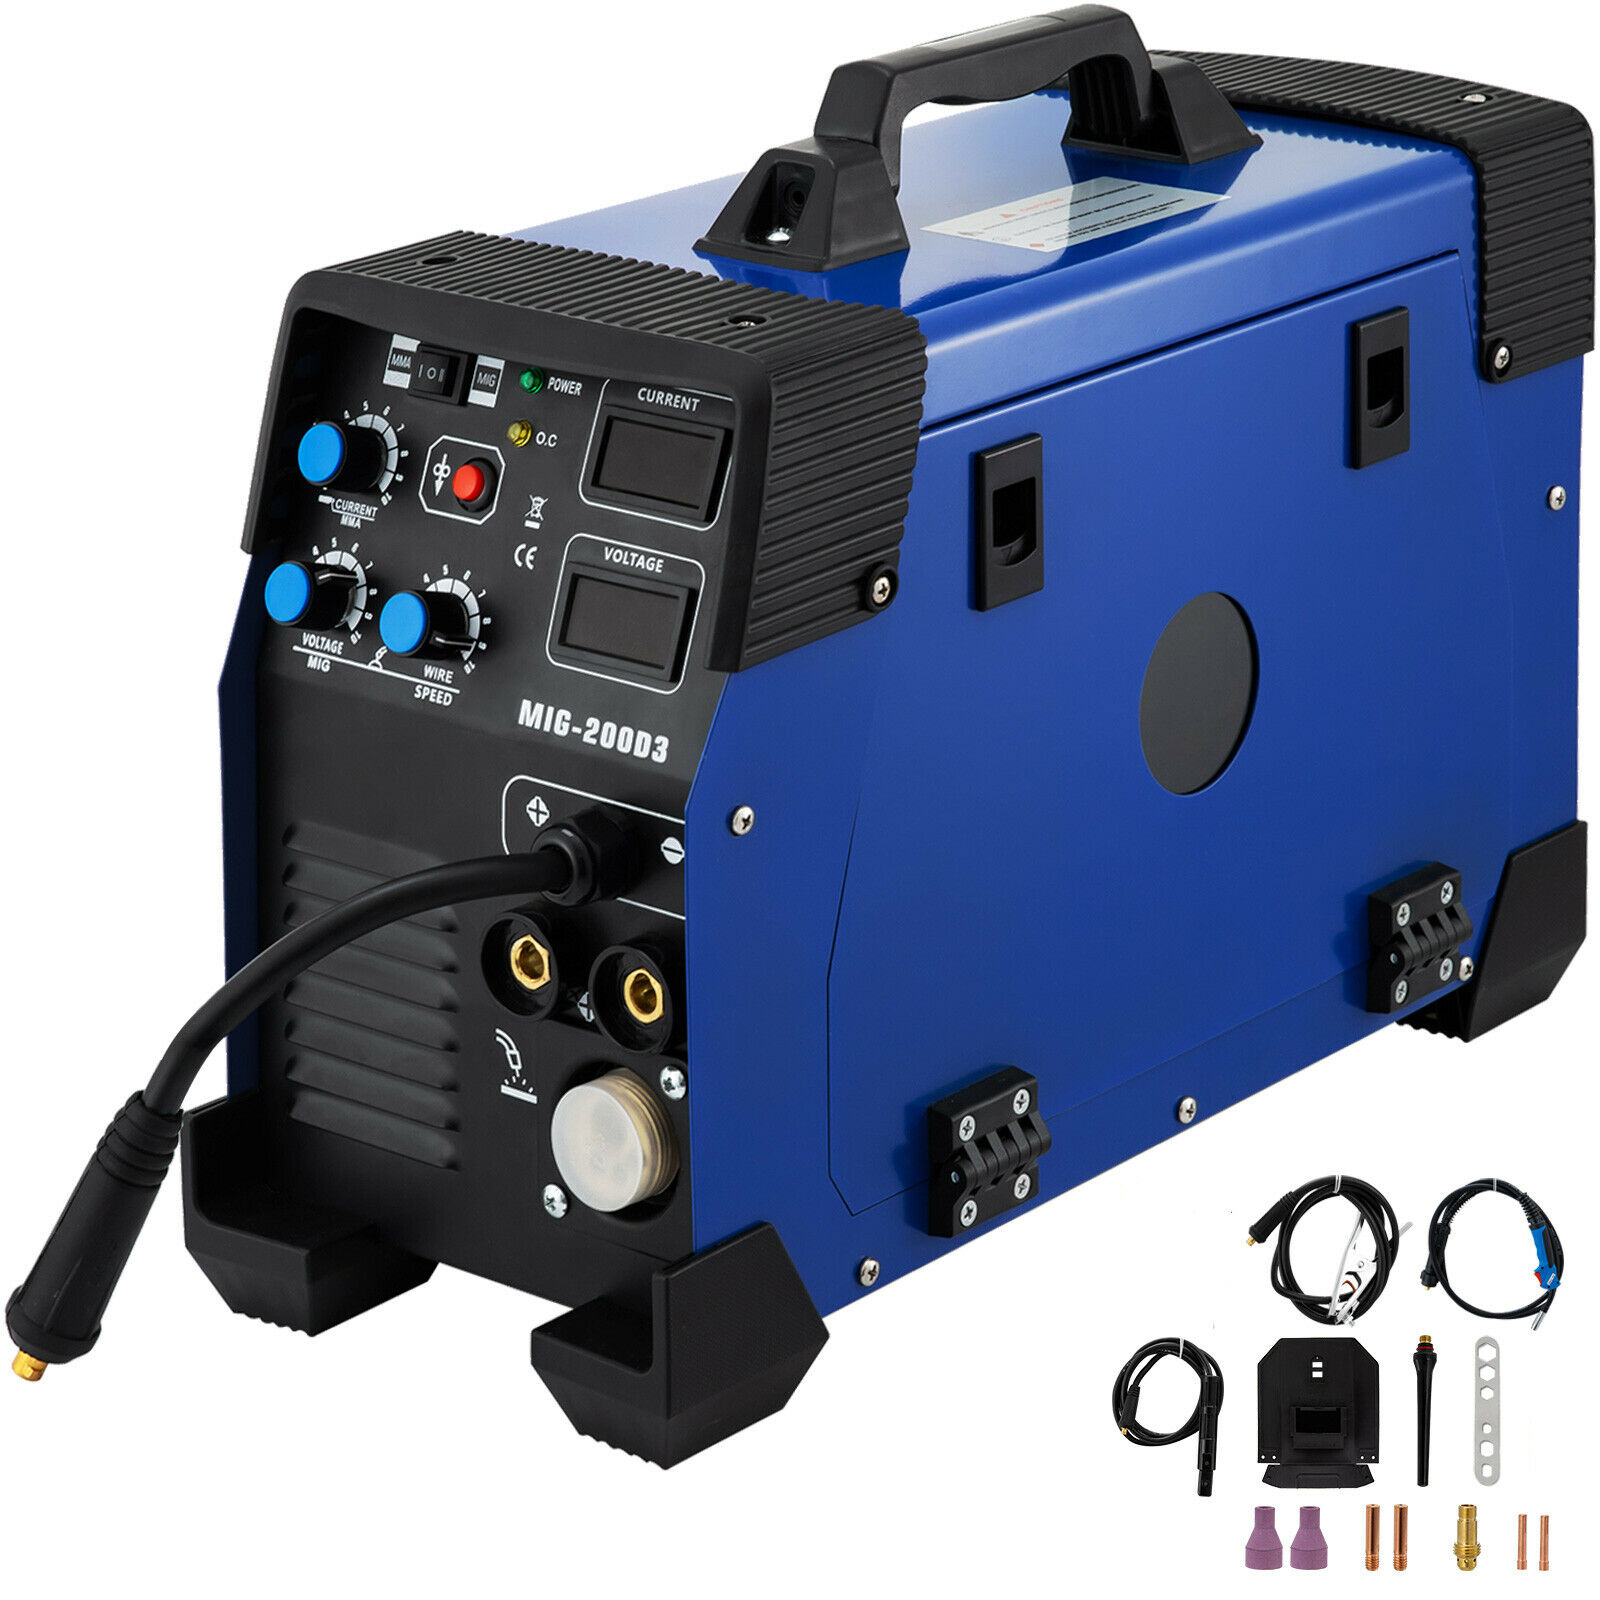 MAG MAG Machine Welding   E 200A MIG Electrode FCAW 1 Hand Welding In   TIG FLUX   Inverter 5   MMA MMA Machine